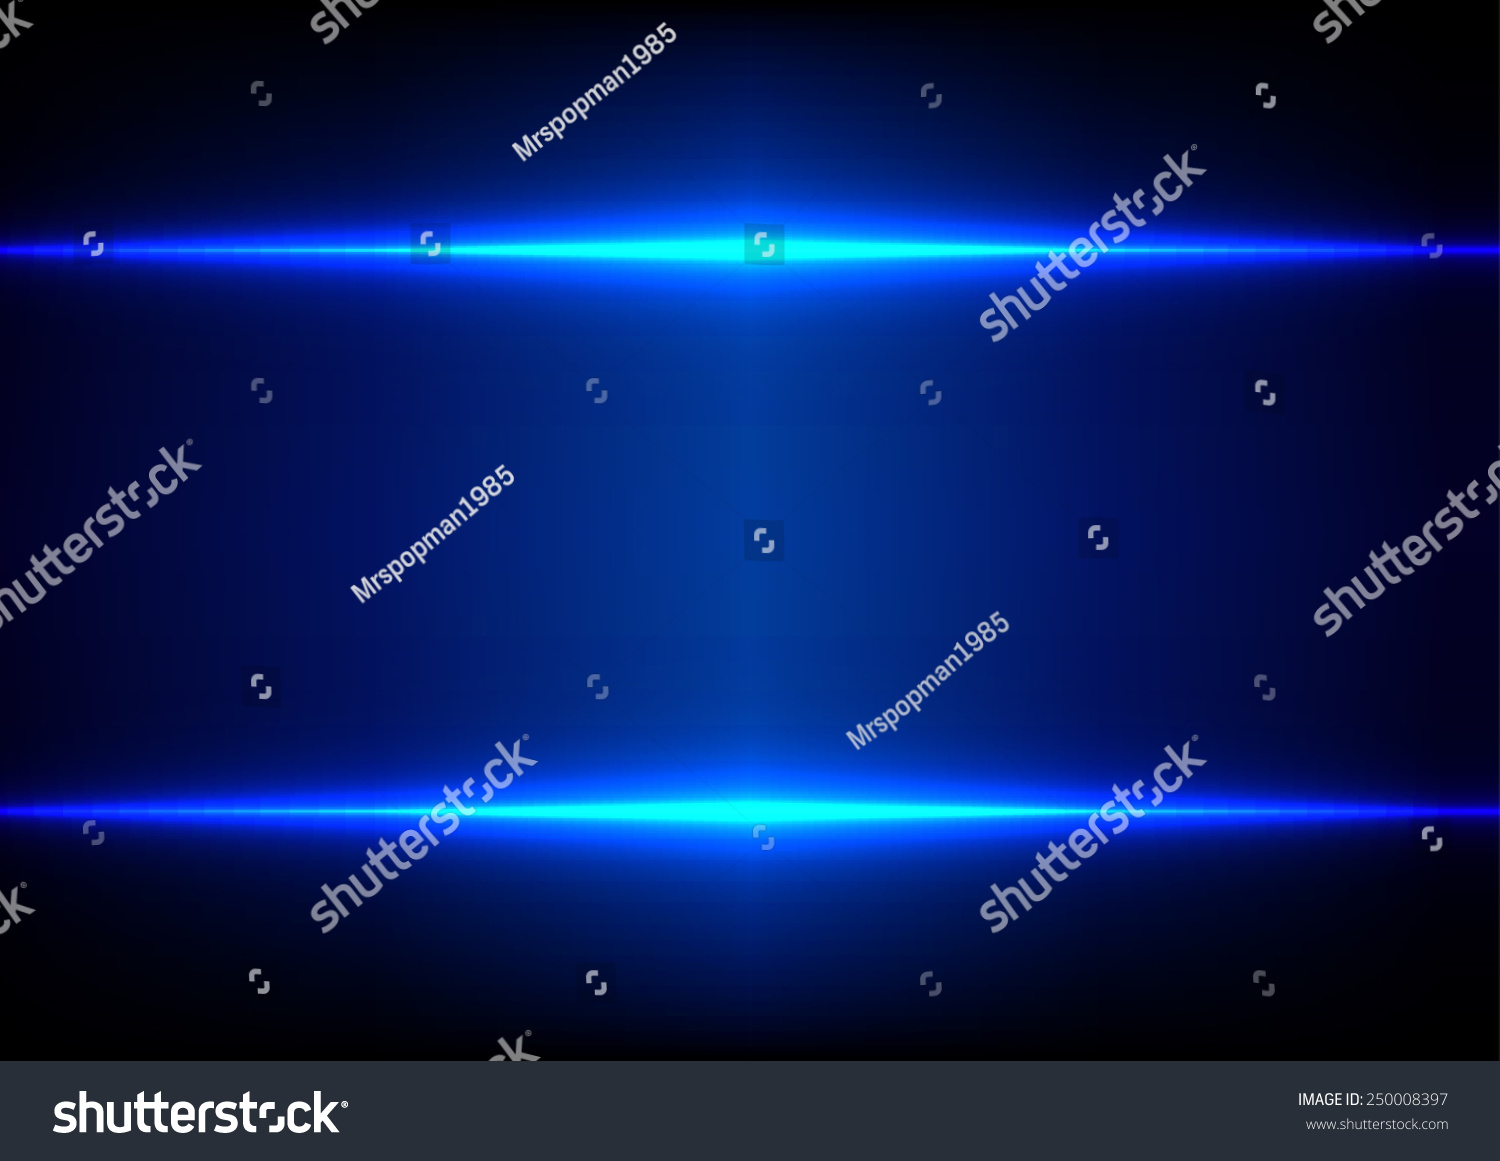 Abstract Technology Background With Light Effect: Abstract Blue Light Effect Background Stock Vector